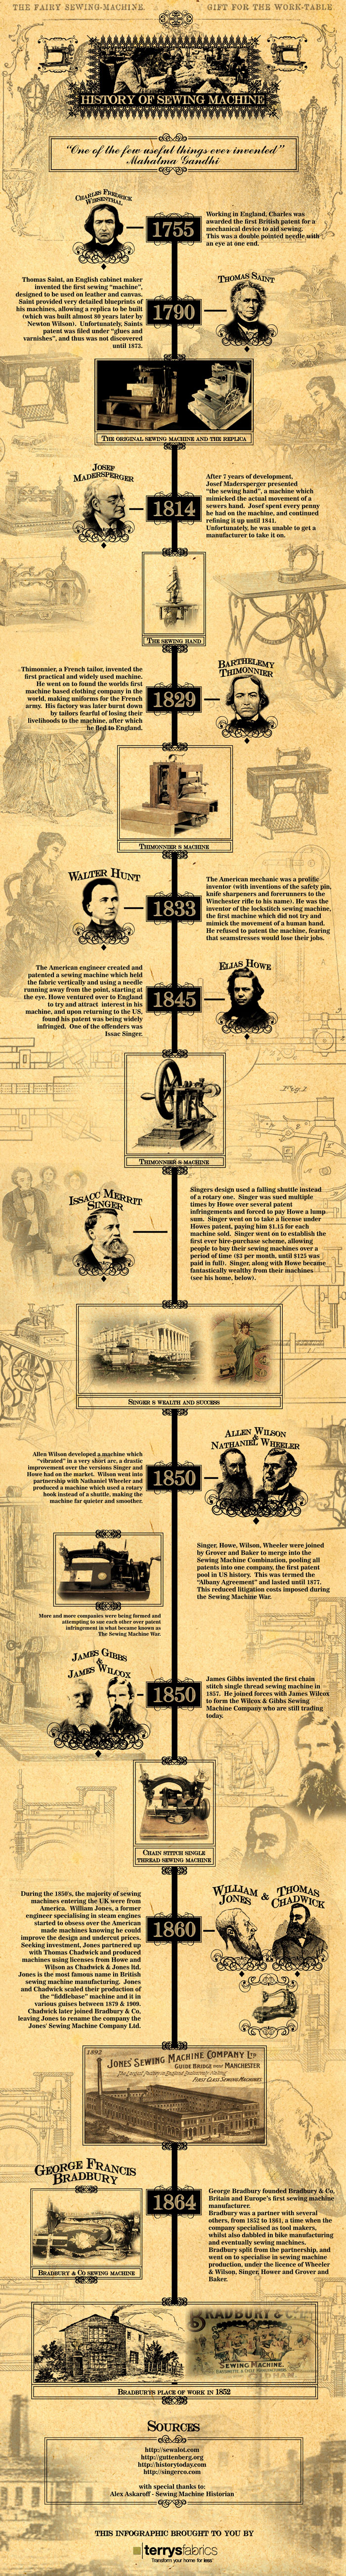 Sewing Machine History Infographic